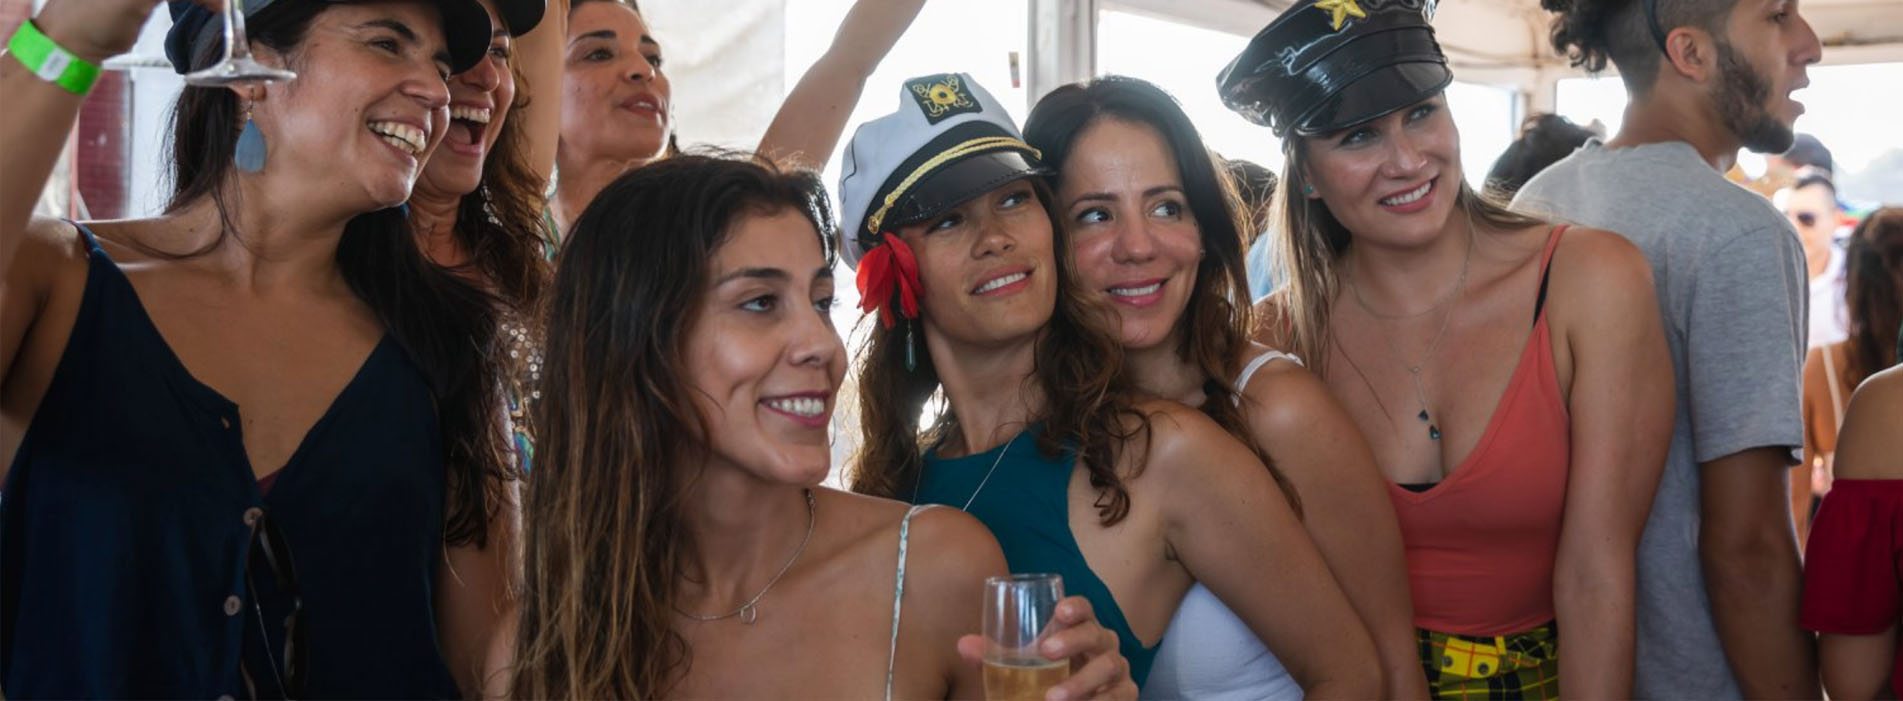 PADDLE SHIP DECOY good looking girls party